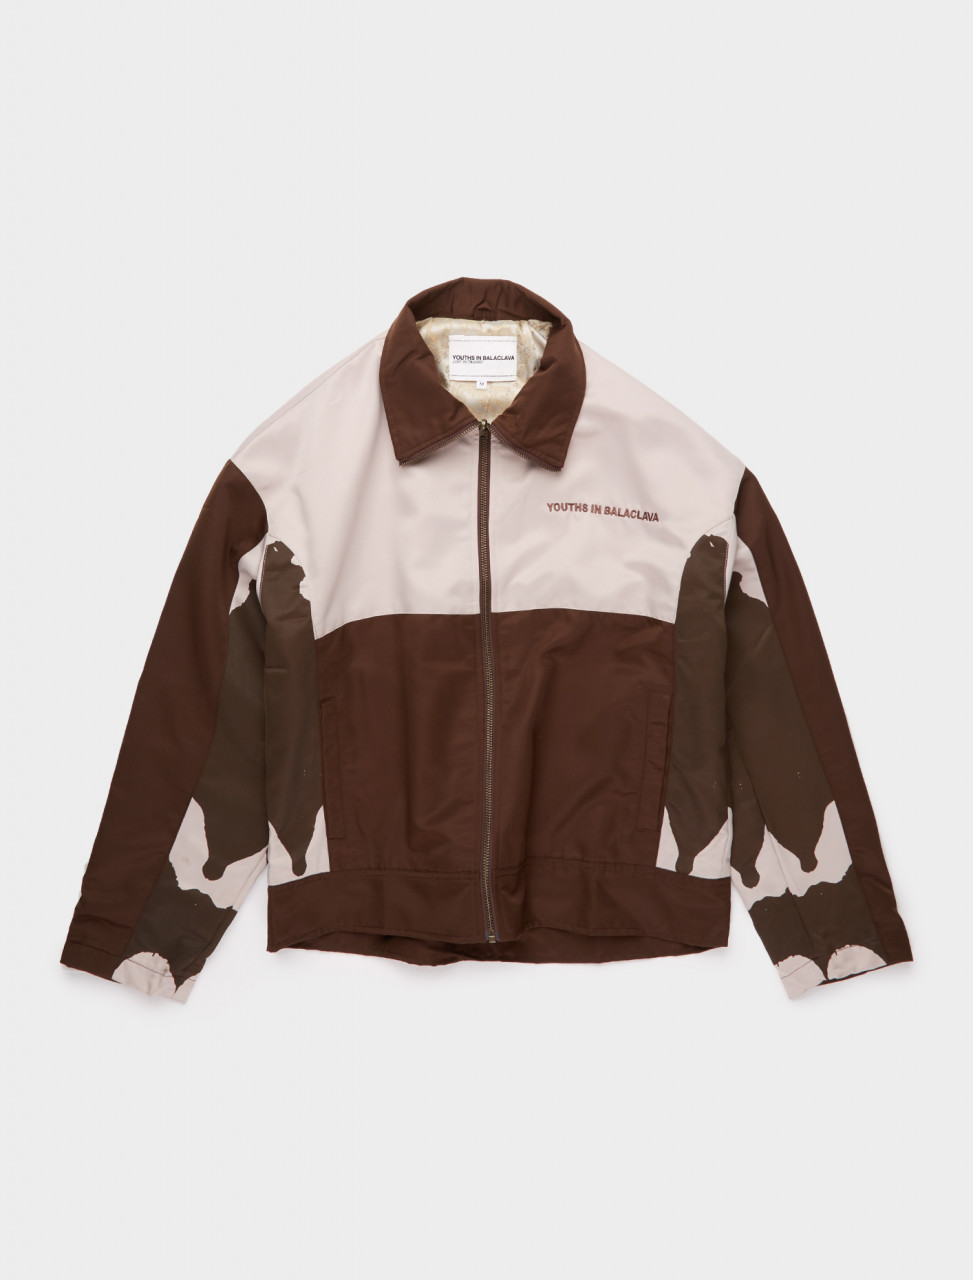 328-YOU01J001-3 YOUTHS IN BALACLAVA JACKET IN BROWN